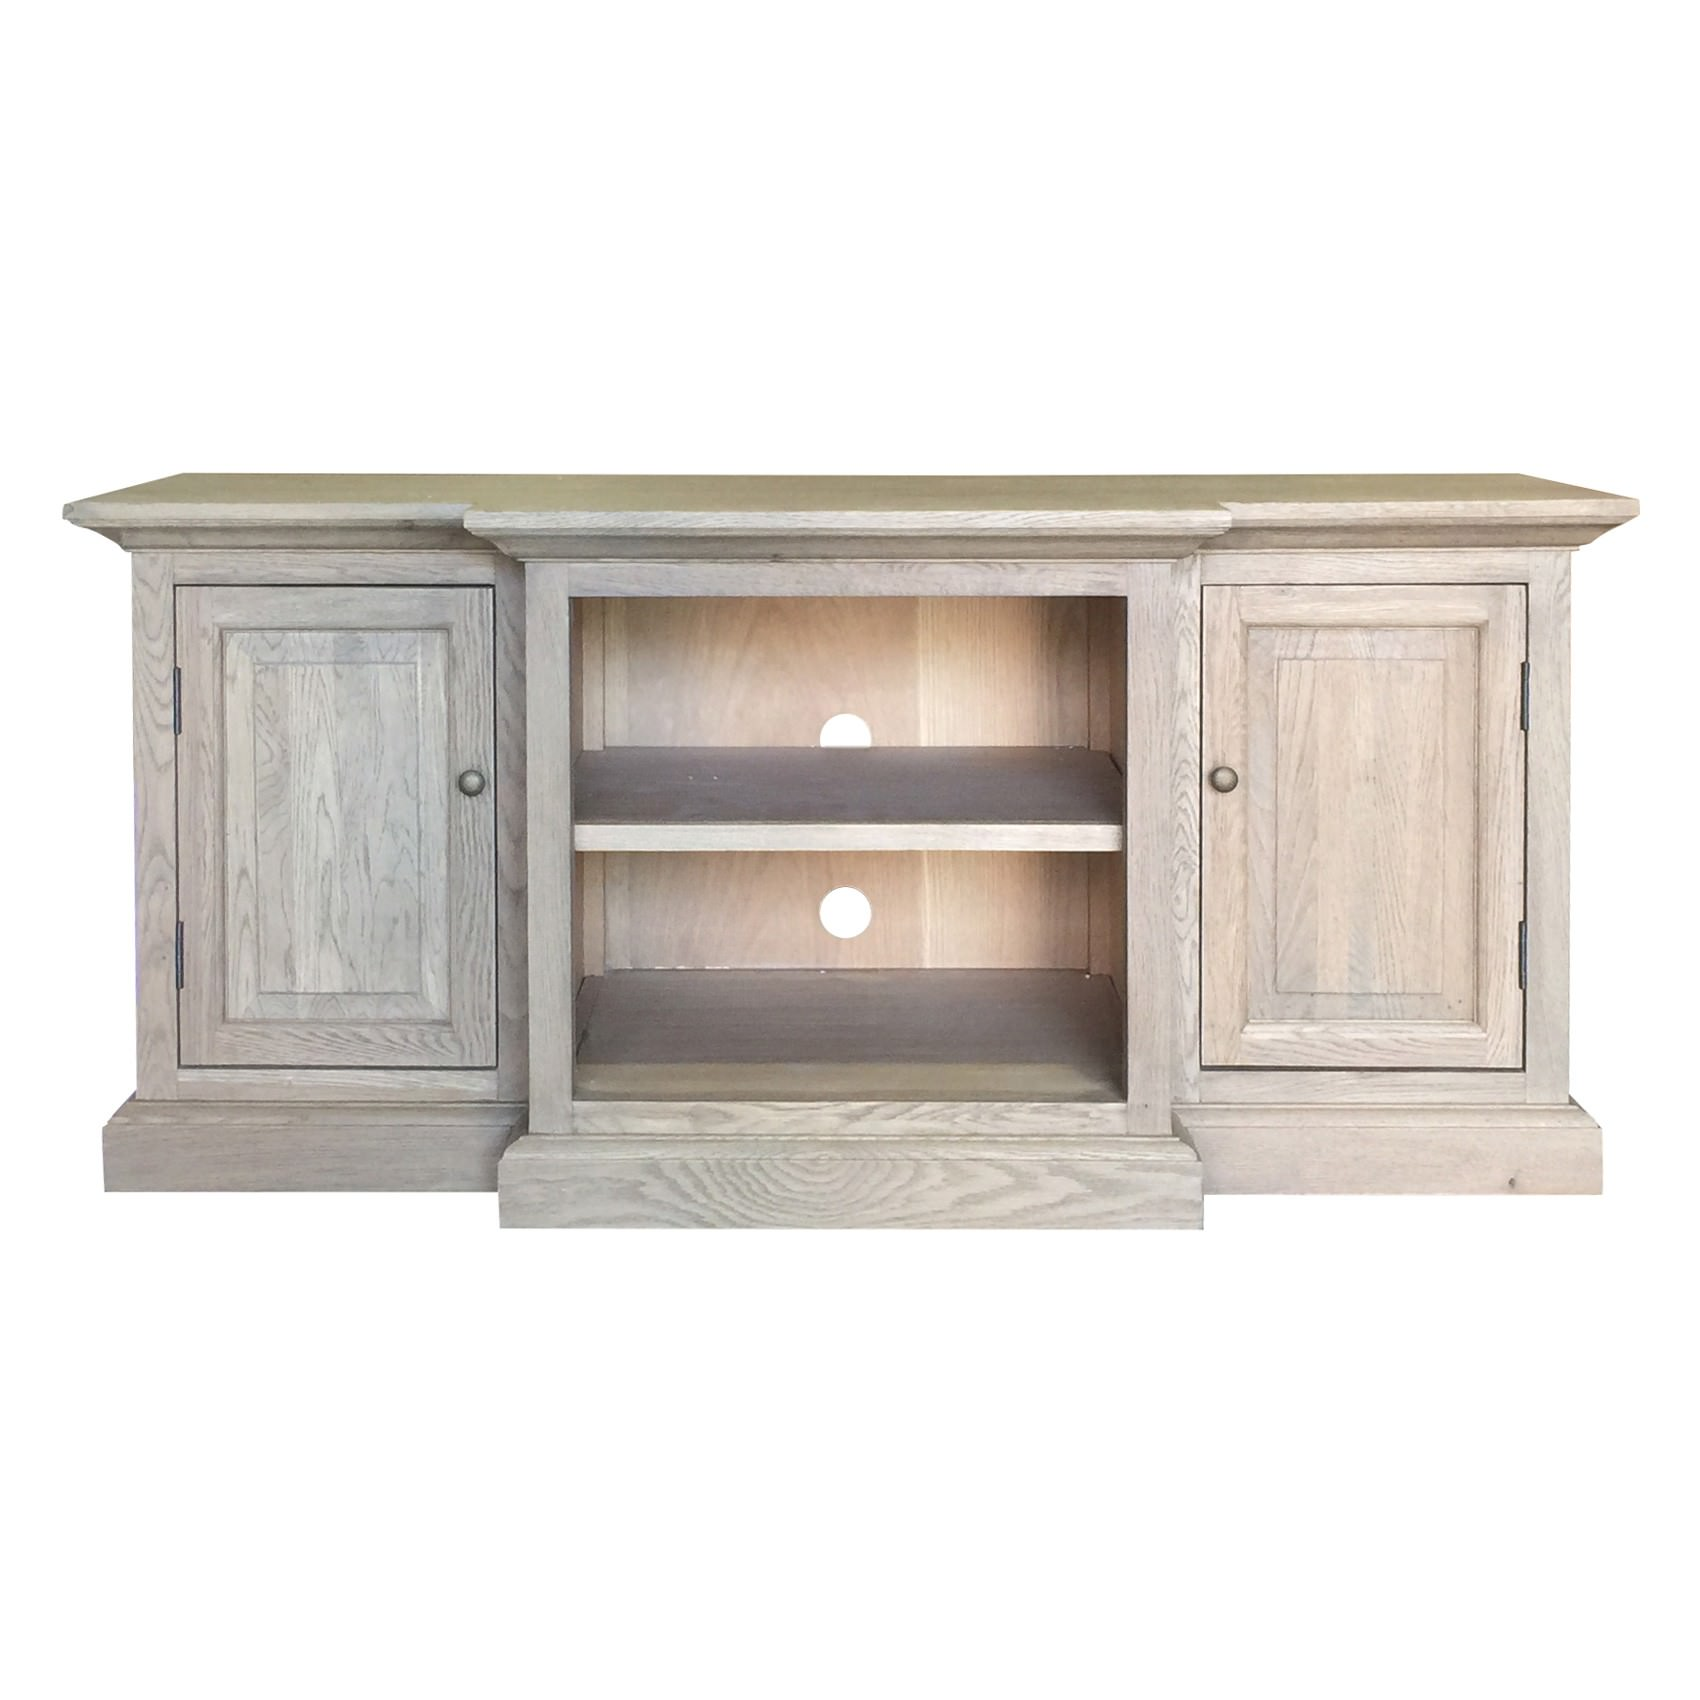 Oakland Oak Timber 2 Door TV Unit, 144cm, Weathered Oak